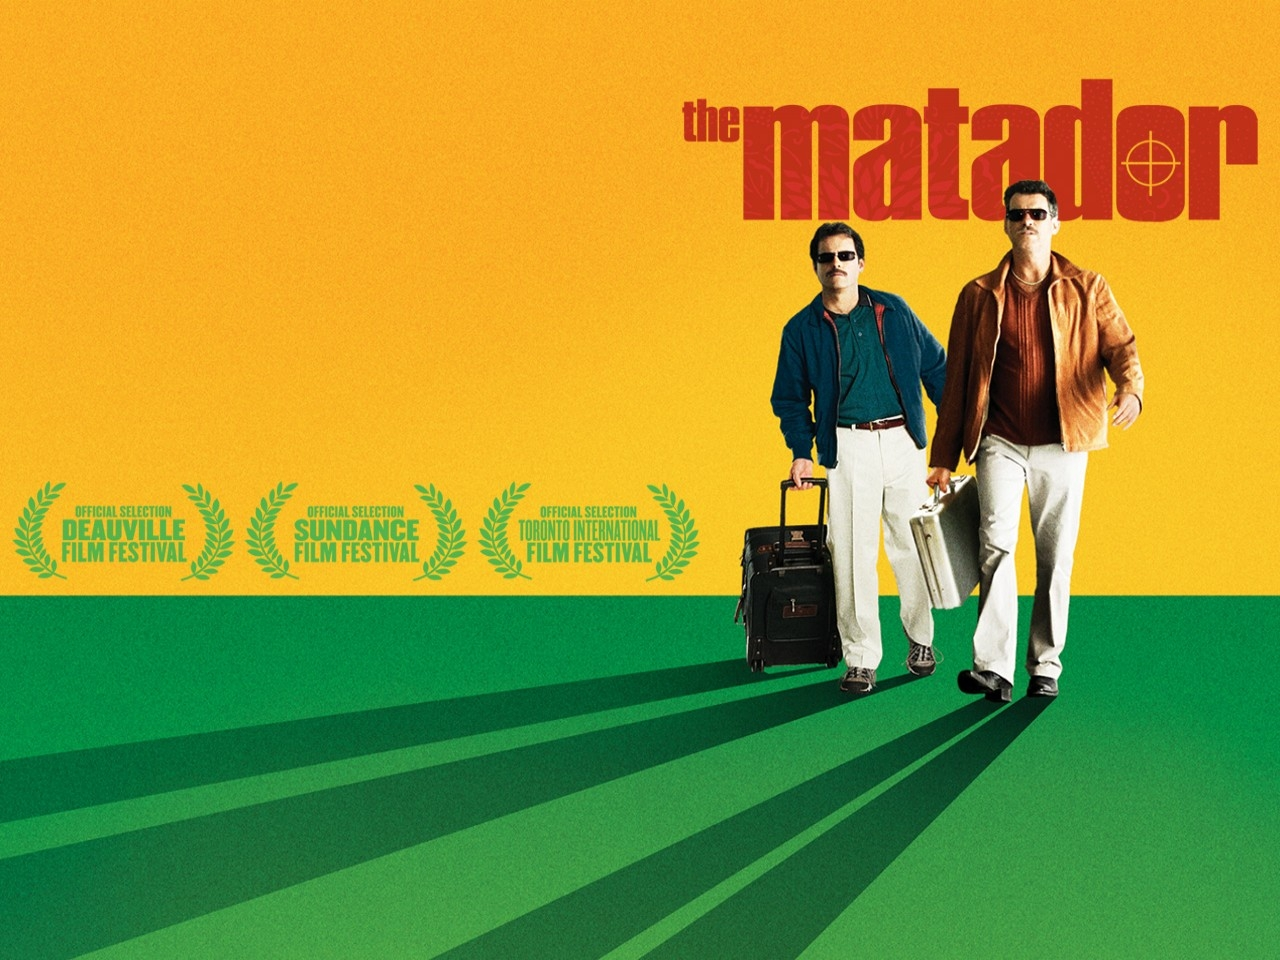 Wallpaper del film The Matador